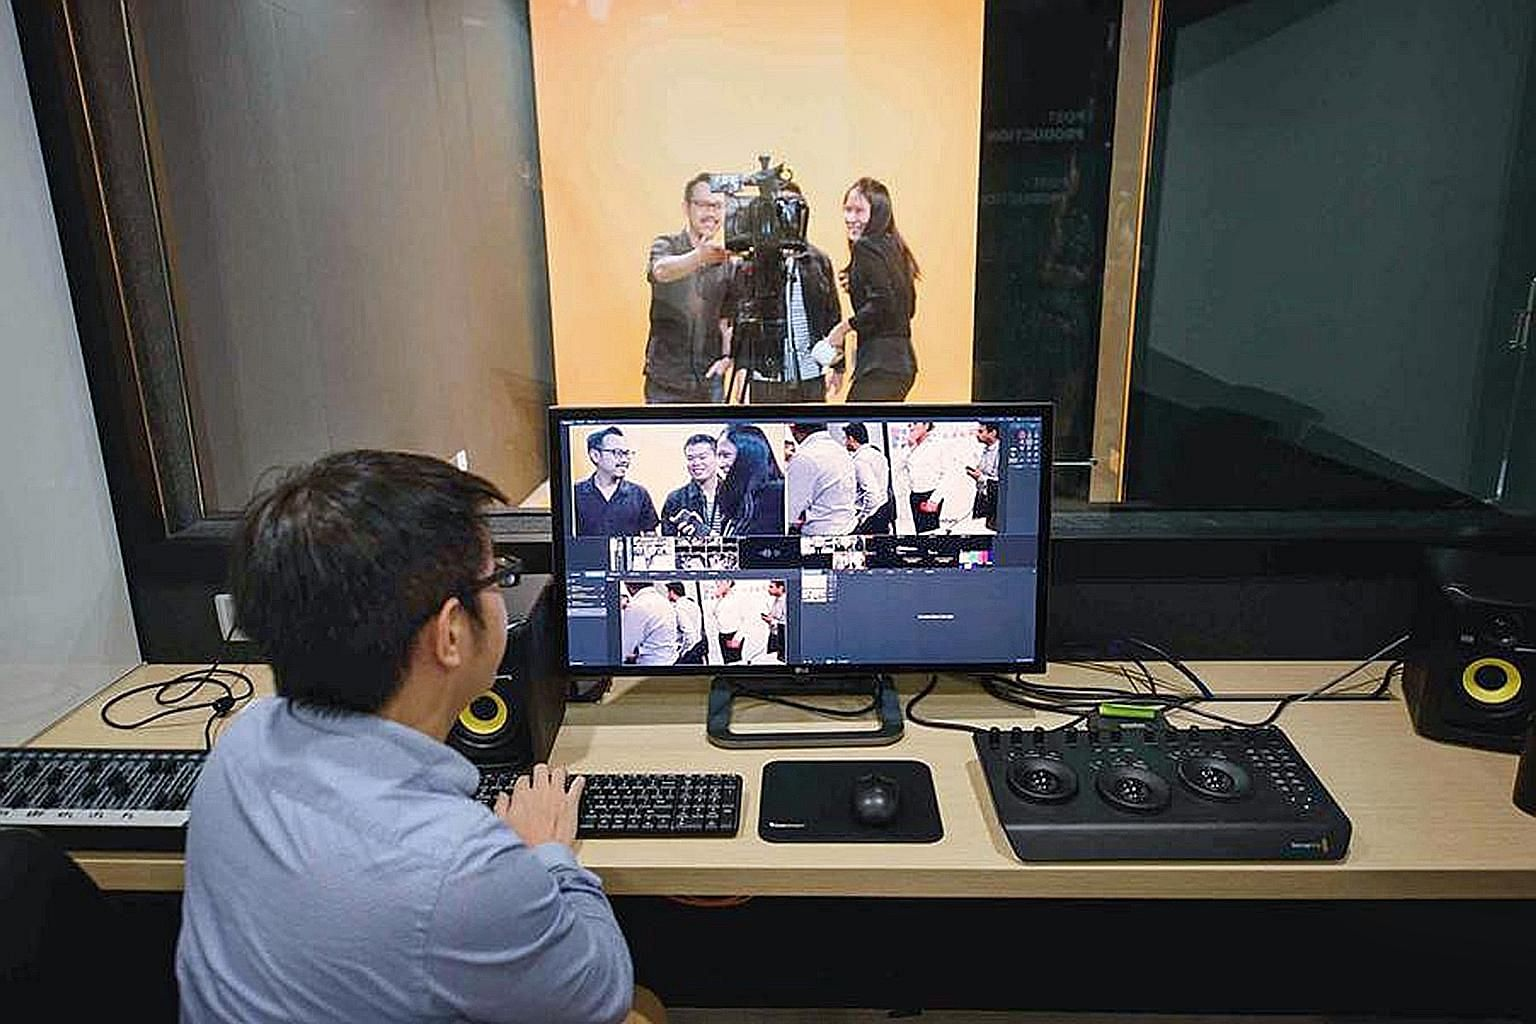 Accenture's digital hub includes an interactive studio which offers live content production and video-editing facilities.